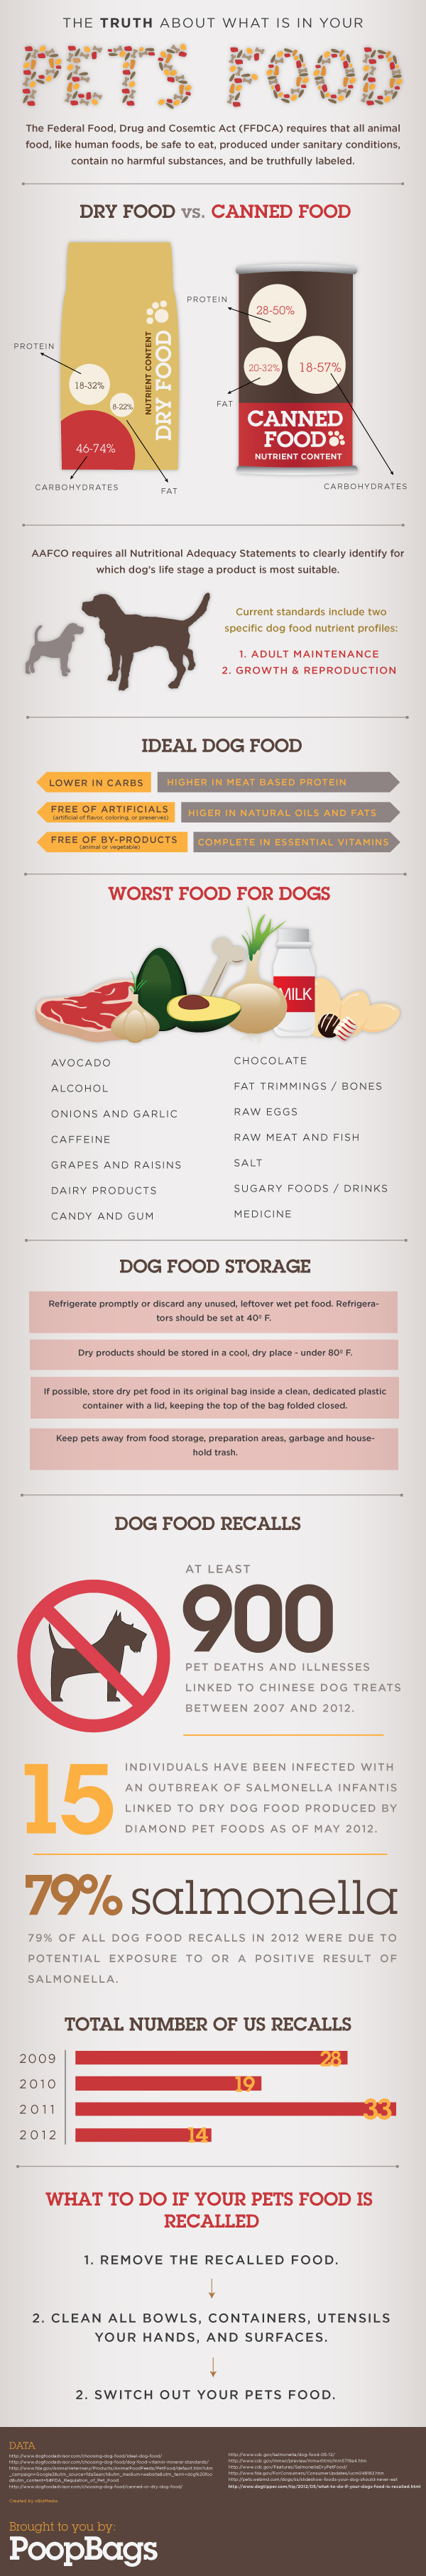 the-truth-about-dog-food2.jpg